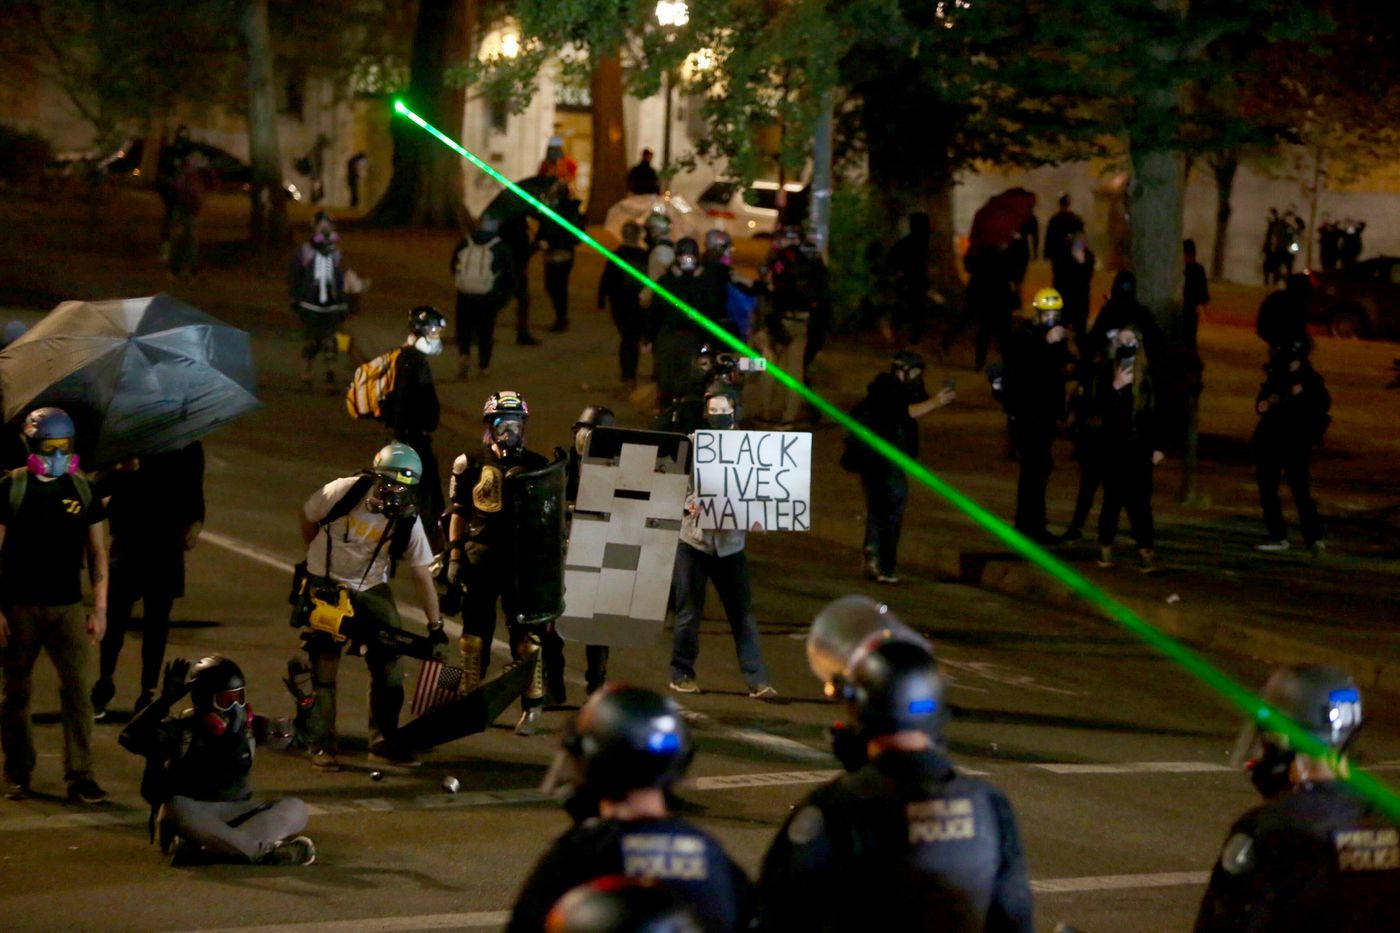 Portland police declare unlawful assembly amid protests